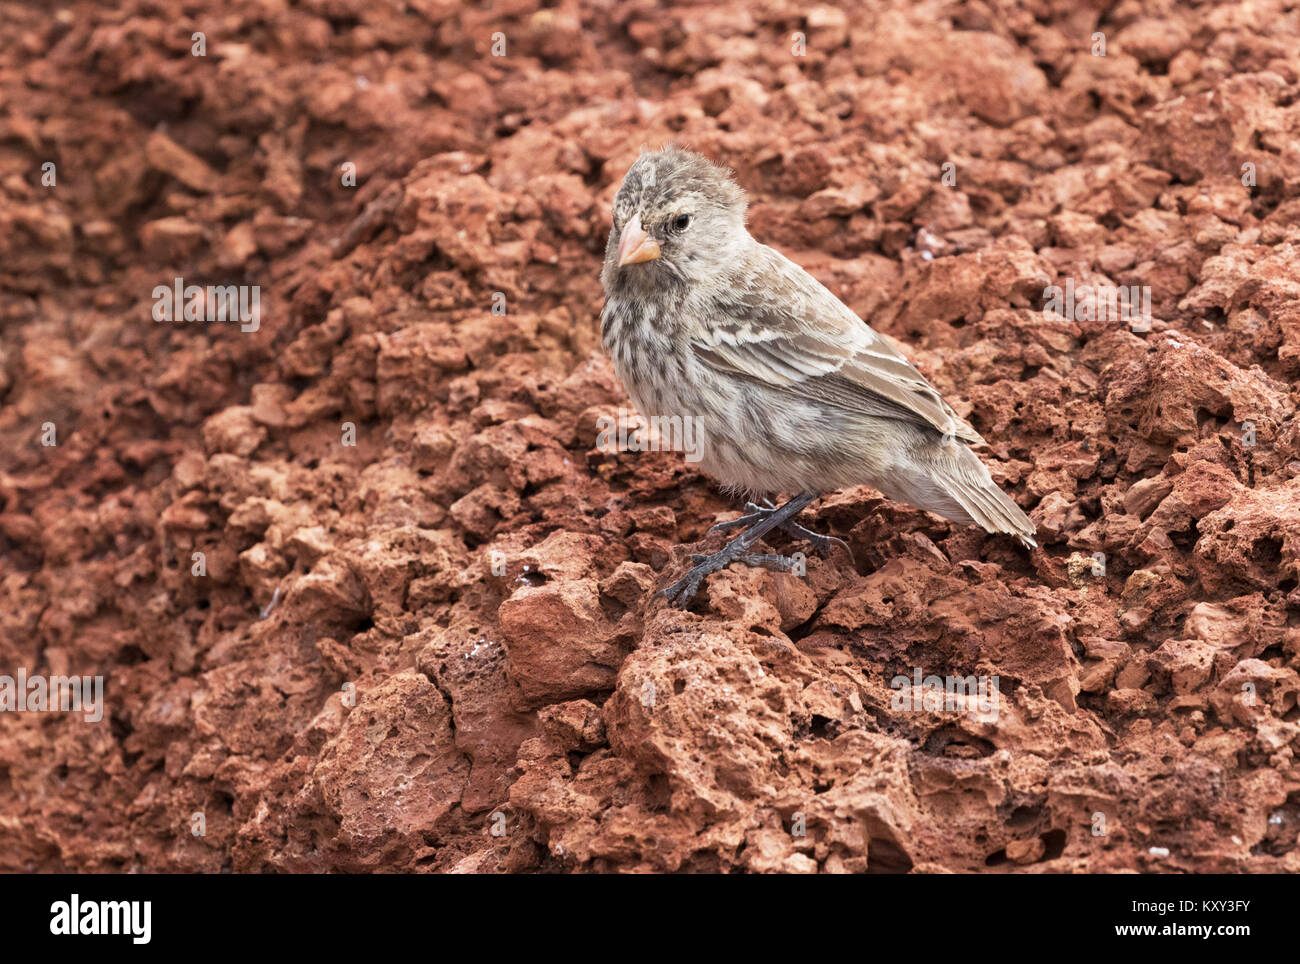 Galapagos Finch or Darwin Finch, Rabida Island, Galapagos Islands Ecuador South America - Stock Image